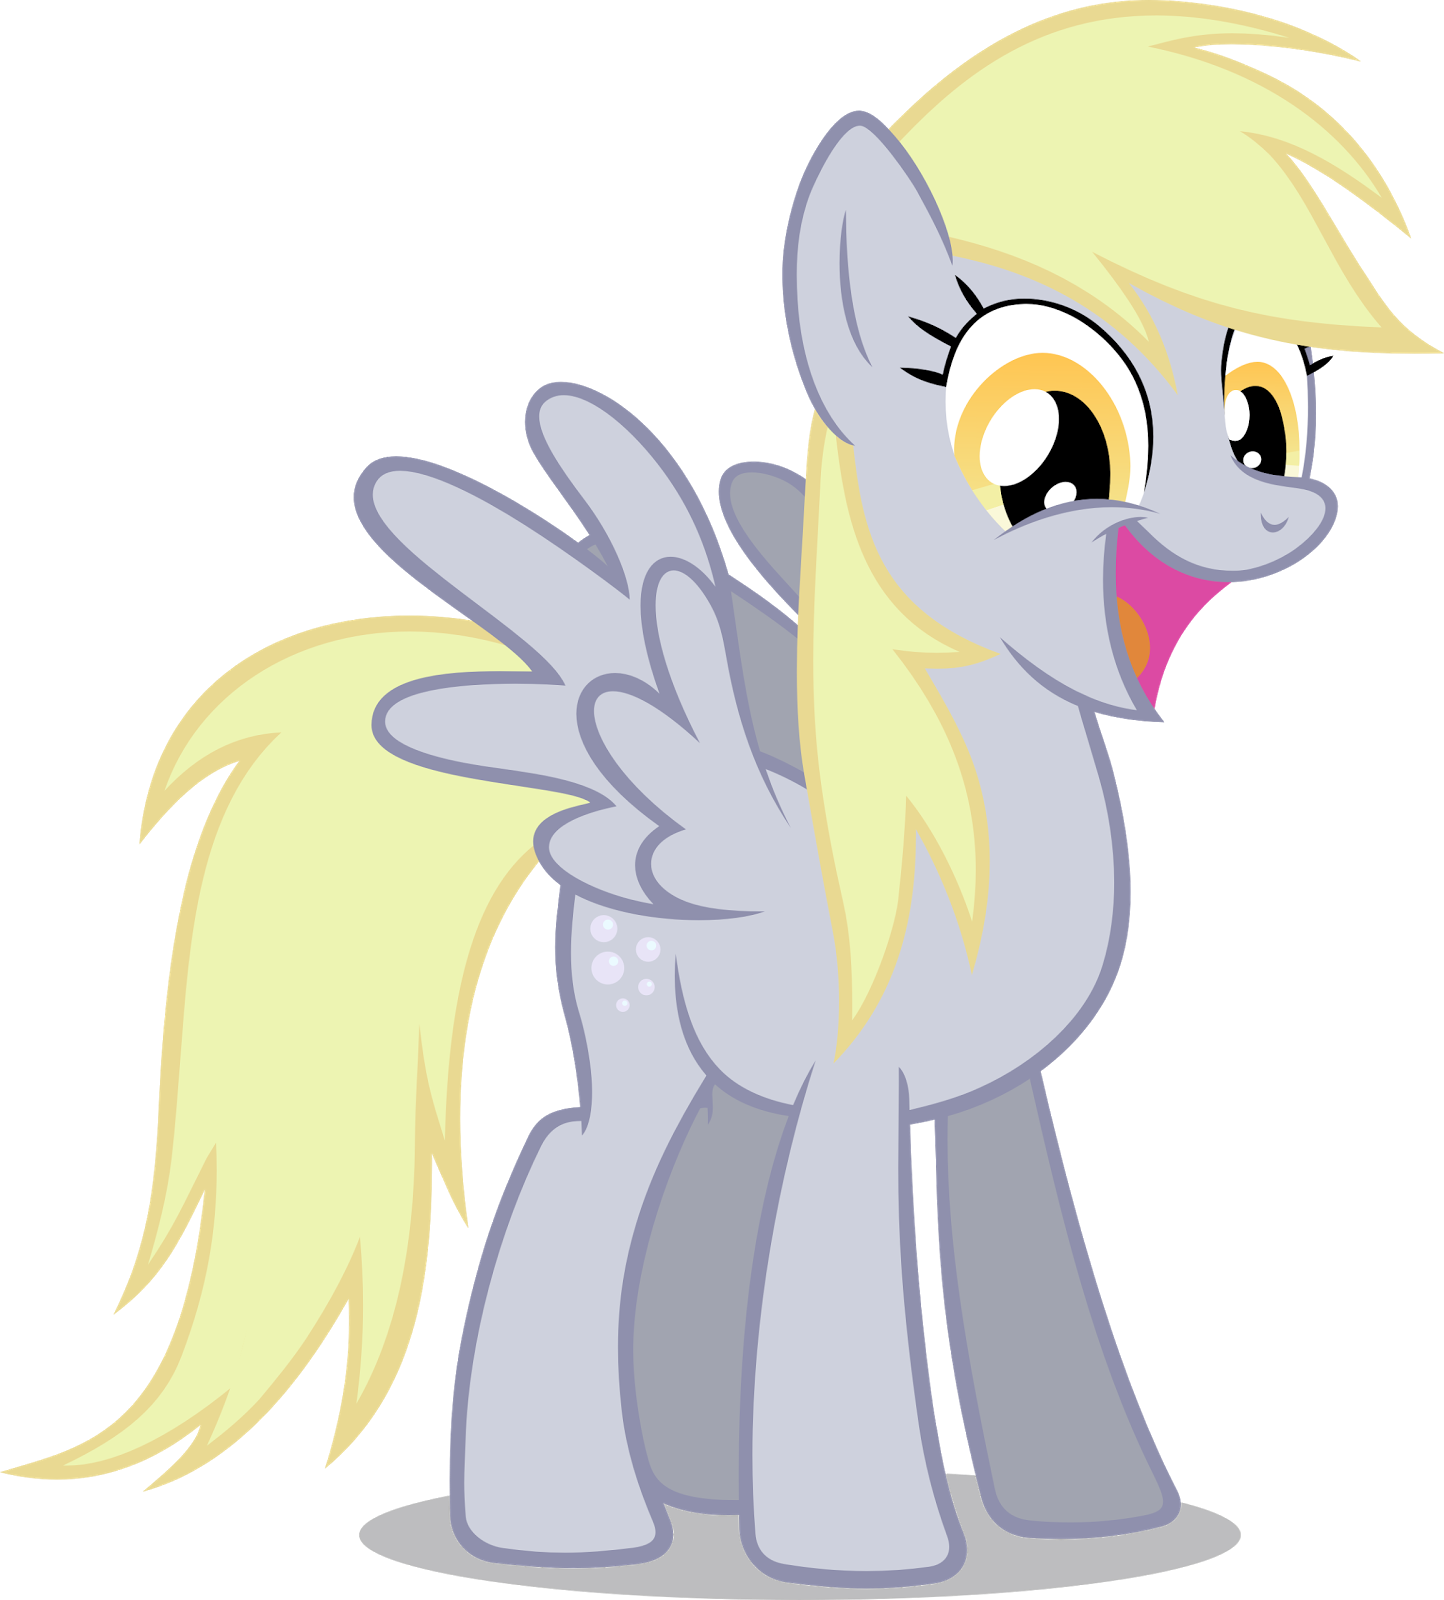 Equestria Daily - MLP Stuff!: Happy Birthday, Derpy Hooves!